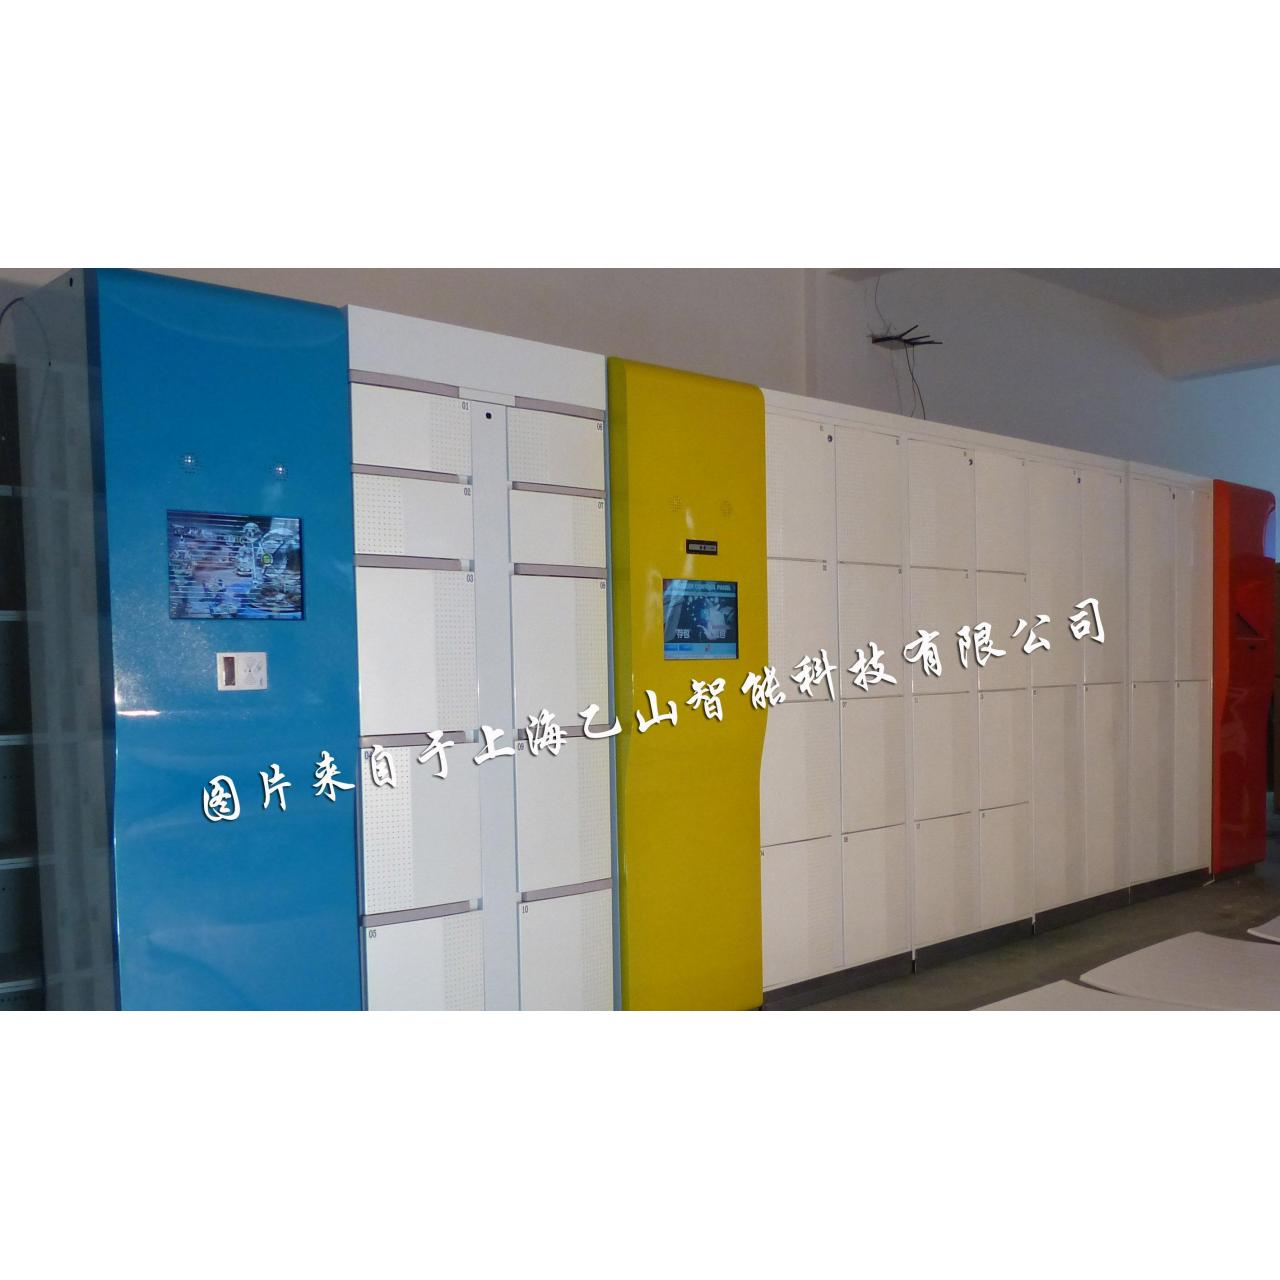 Facial recognition 15-Inch Touch Screen Electronic Locker